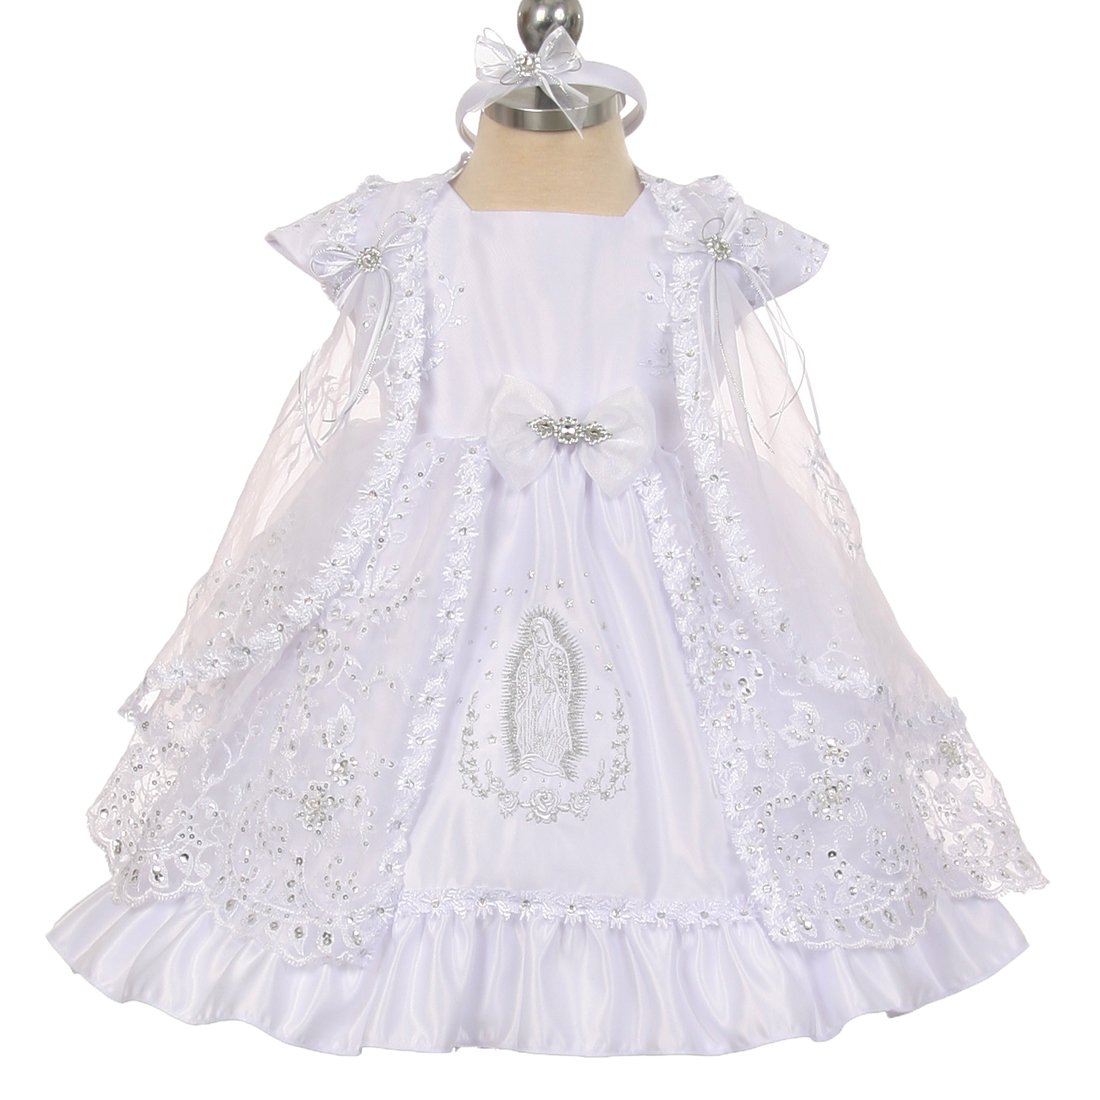 Rainkids Baby Girls White Virgin Mary Embroidery Cape Baptism Dress 0-24M The Rain Kids